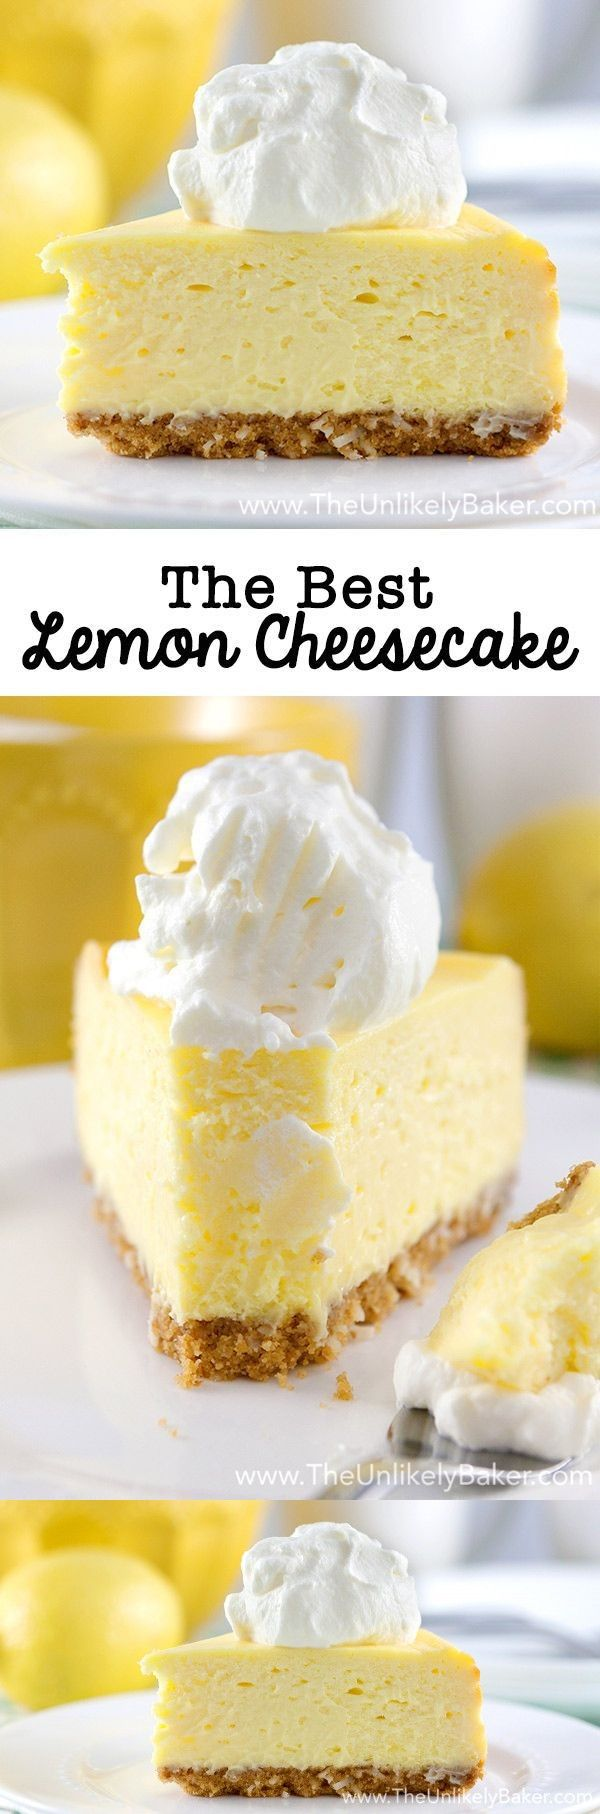 1 tbsp Lemon, zest. 4 Eggs, large. 2 tbsp All-purpose flour. 3/4 cup Granulated sugar. 1/2 cup Coconut, sweetened. 1 1/2 cups Graham cracker crumbs. 4 blocks 8 ounce cream cheese. 4 tbsp Butter, unsalted. 2 tbsp Milk. 1 cup Sour cream. 2 packages 4-serving size lemon instant pudding.